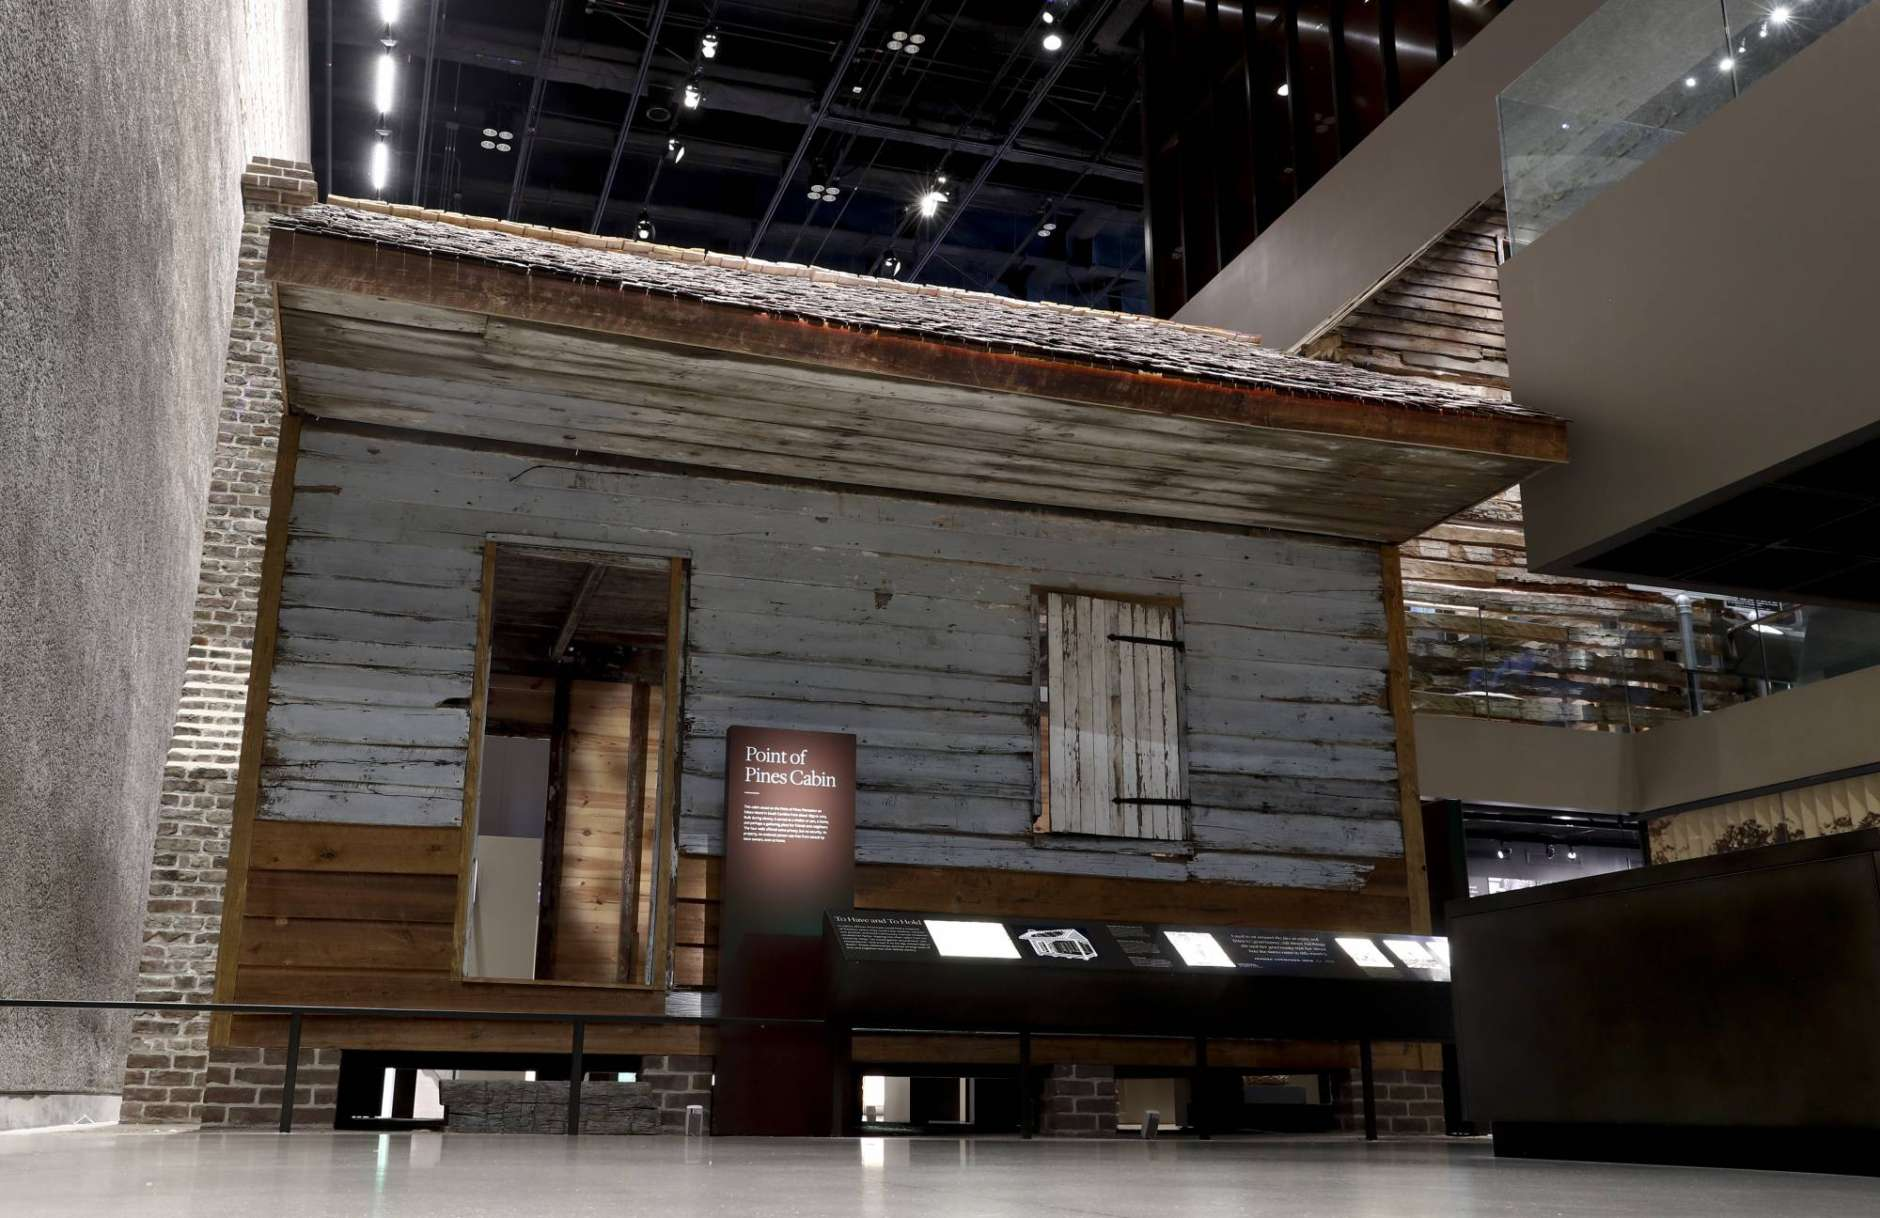 The front of a slave cabin from Edisto Island, S.C. on display at the National Museum of African American History in Washington, Tuesday, April 11, 2017. The two-room wood cabin dates to the 1850's and is prominently displayed in the history galleries of the museum. It is believed to be one of the oldest preserved slave cabins in the U.S. (AP Photo/Carolyn Kaster)